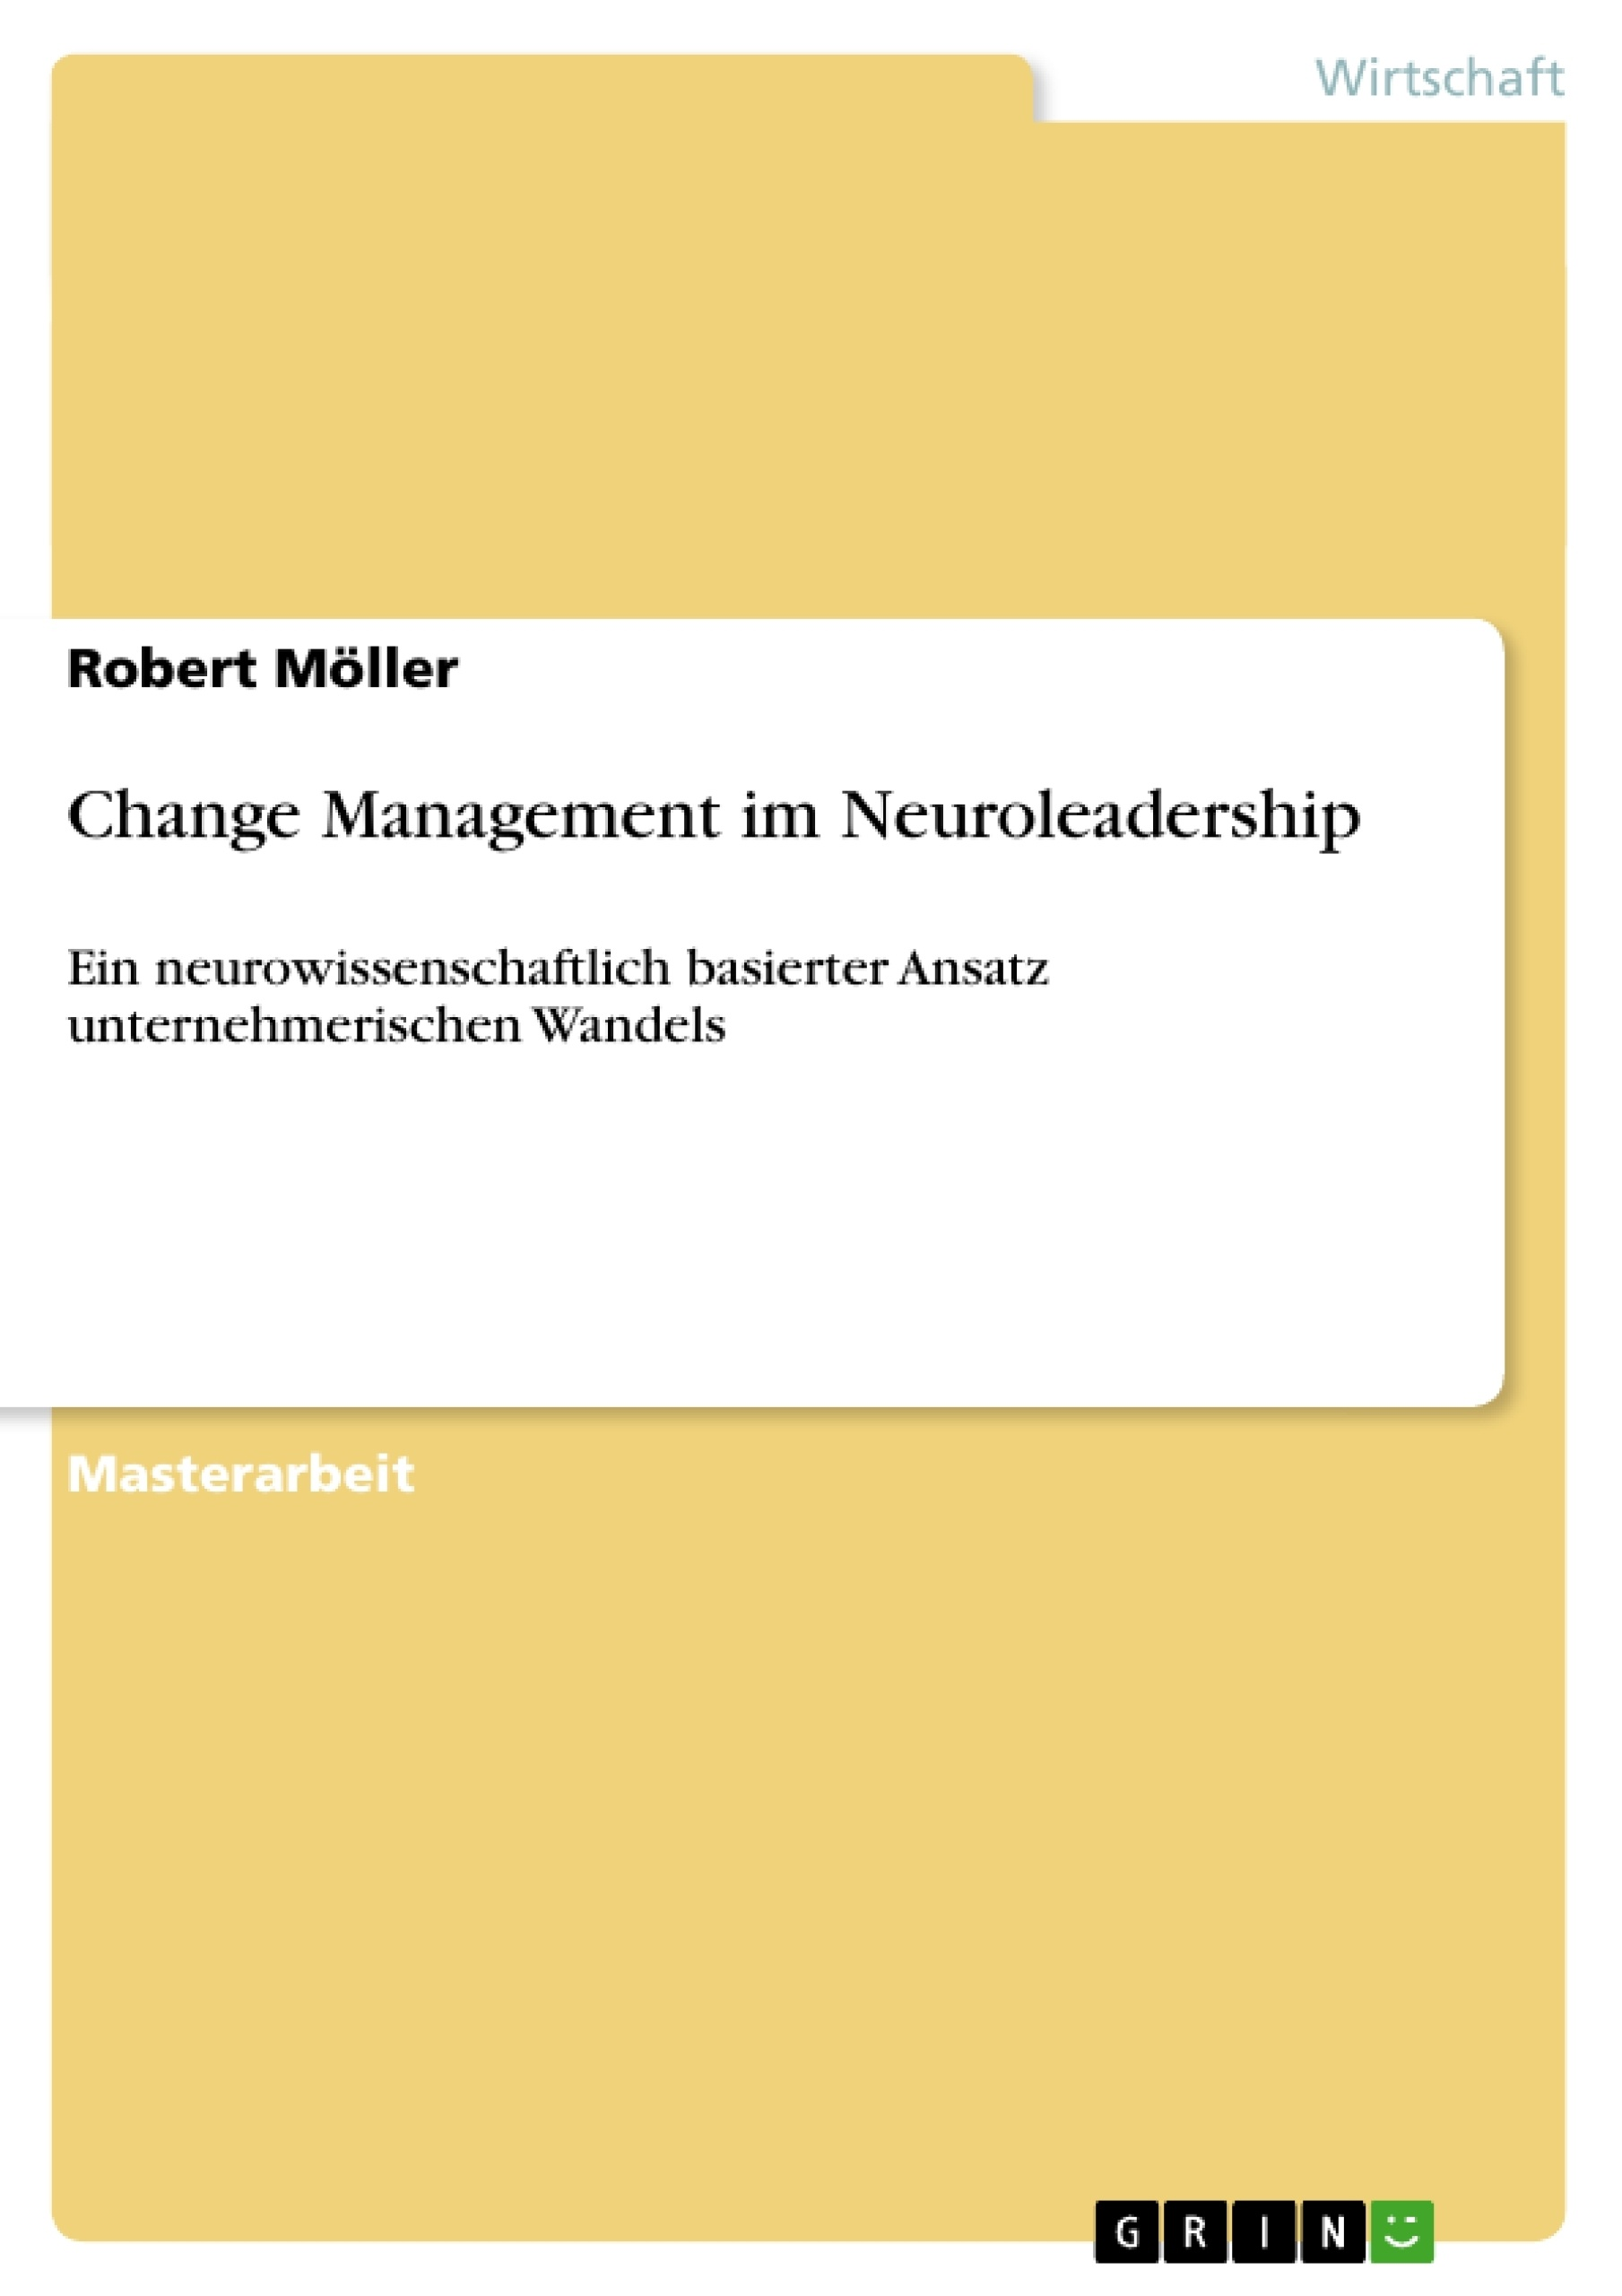 Change Management im Neuroleadership | Masterarbeit, Hausarbeit ...